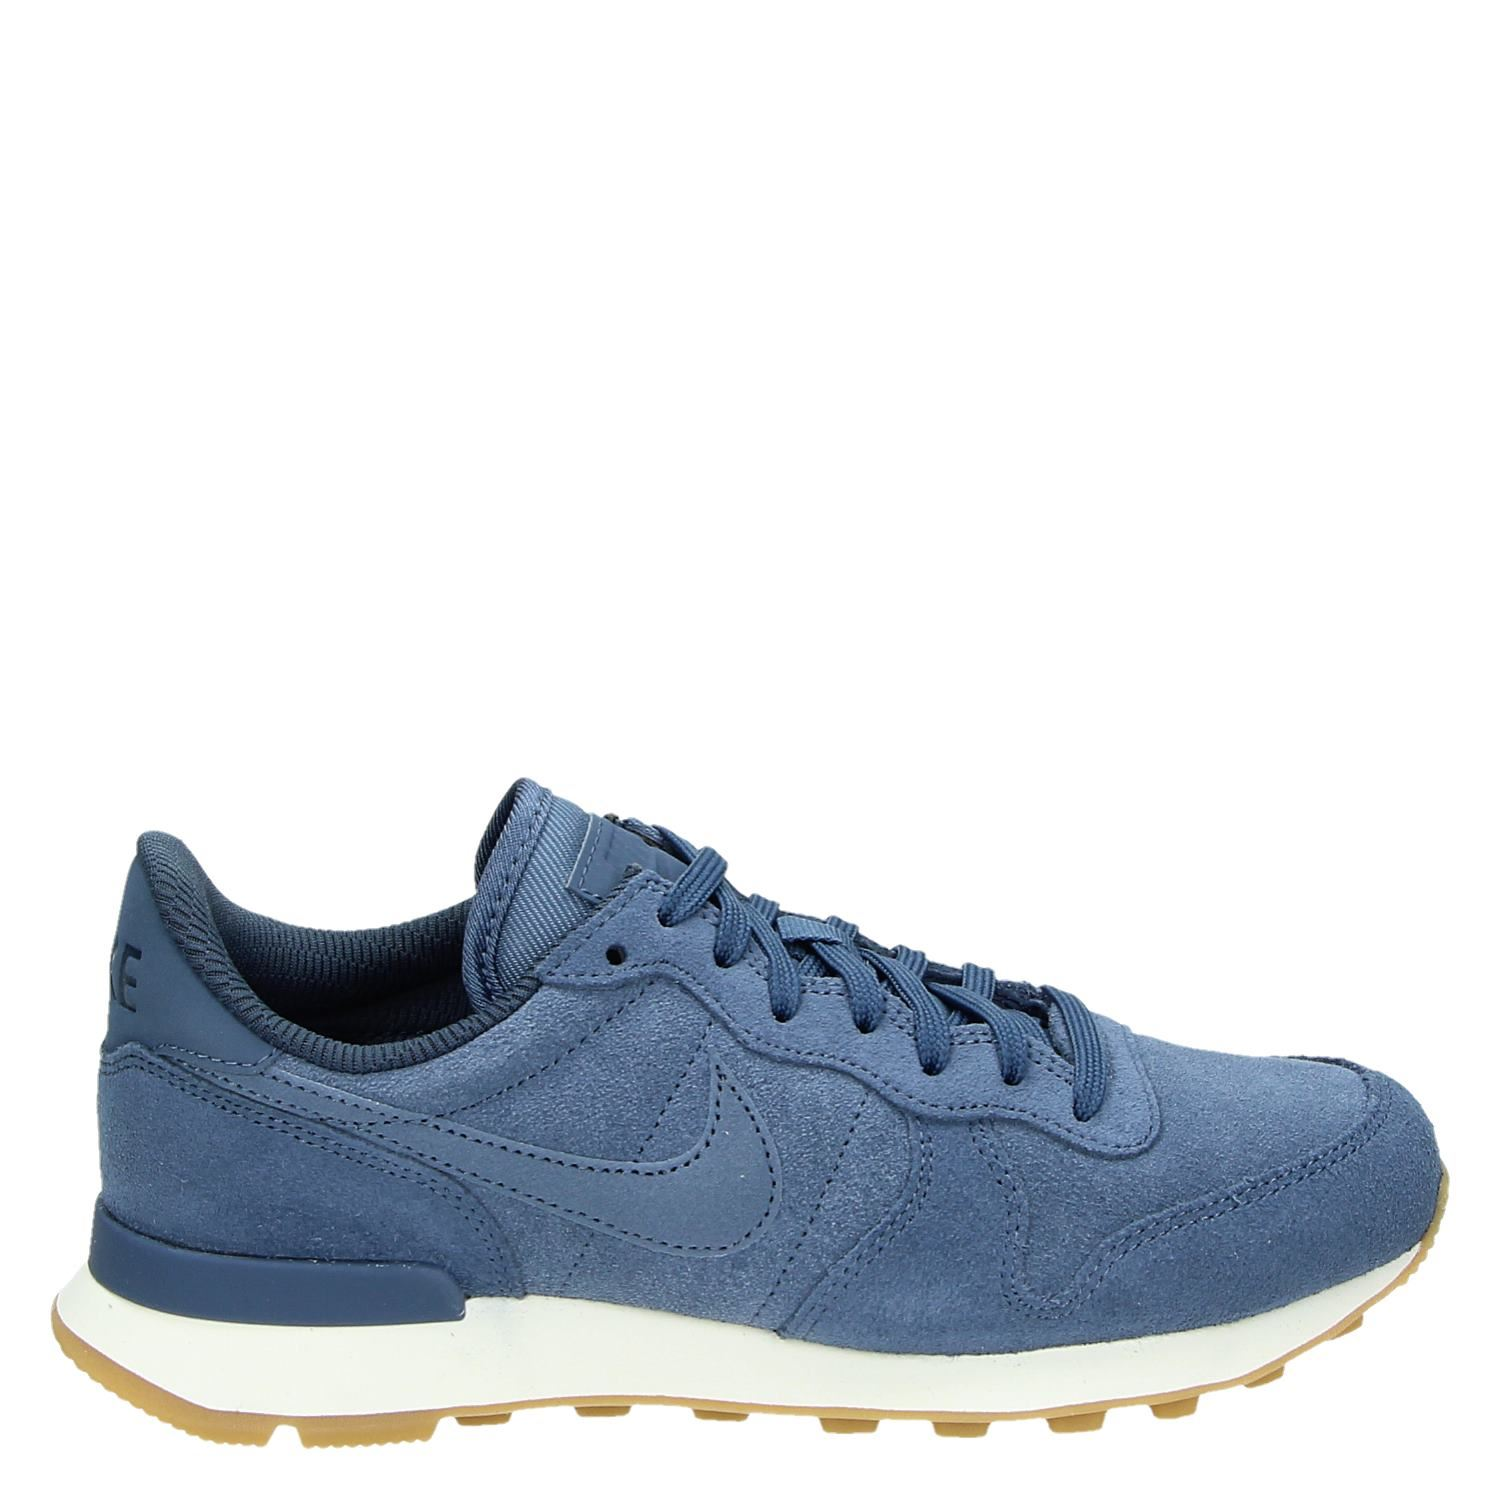 Nike Internationalis dames lage sneakers blauw